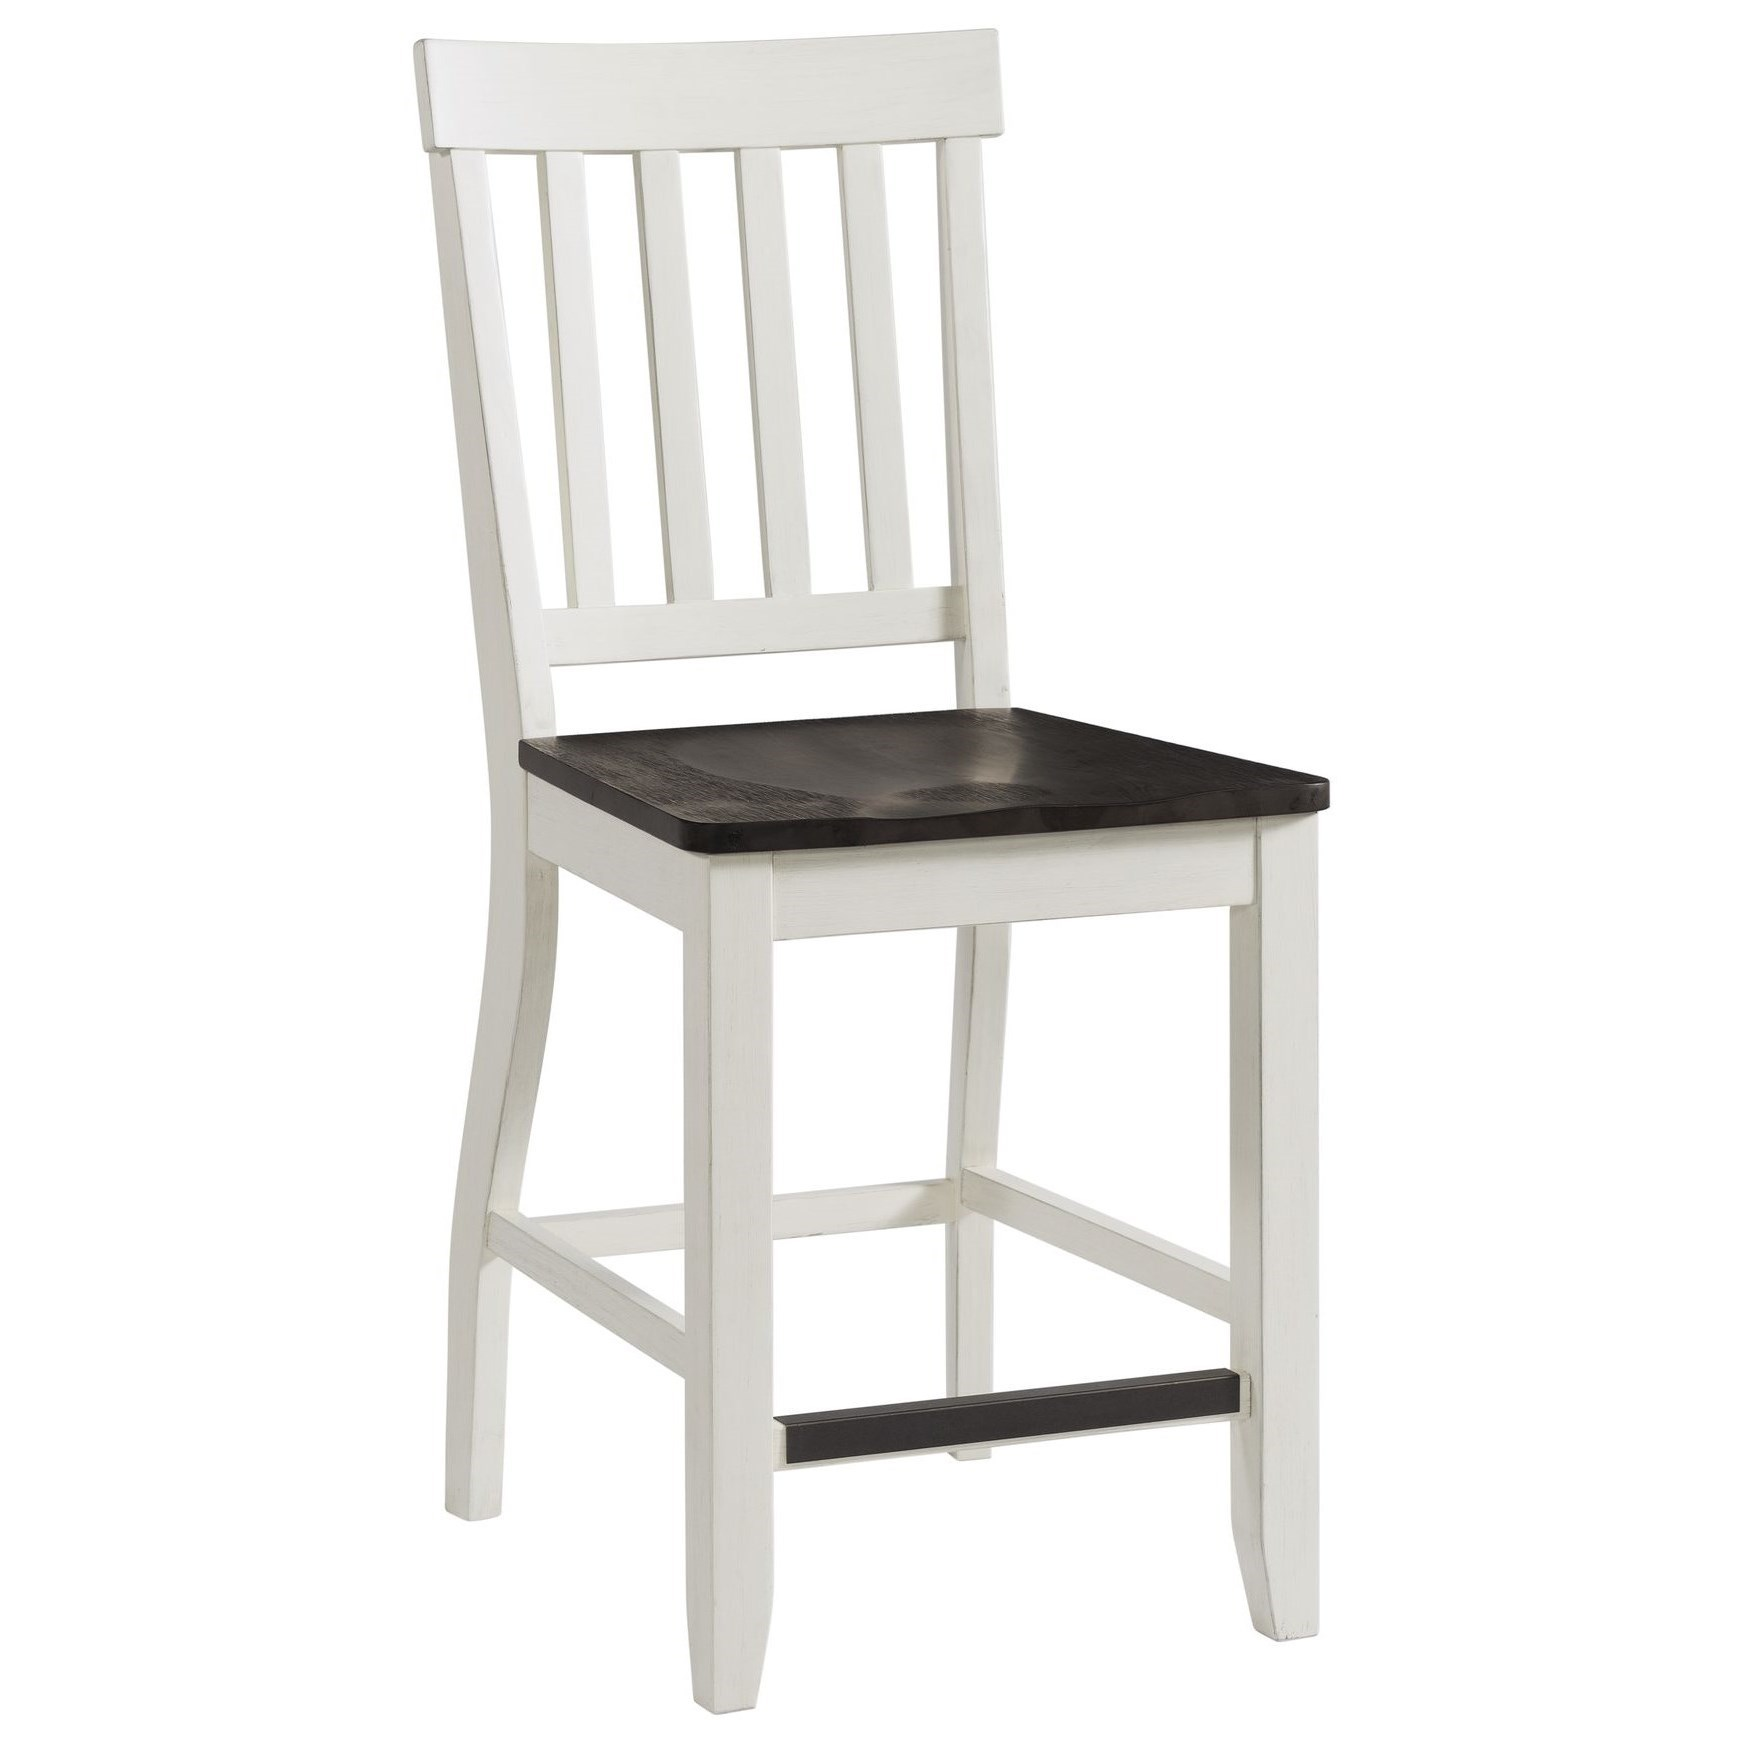 Kayla Two-Tone Counter Height Side Chair by Elements International at Johnny Janosik